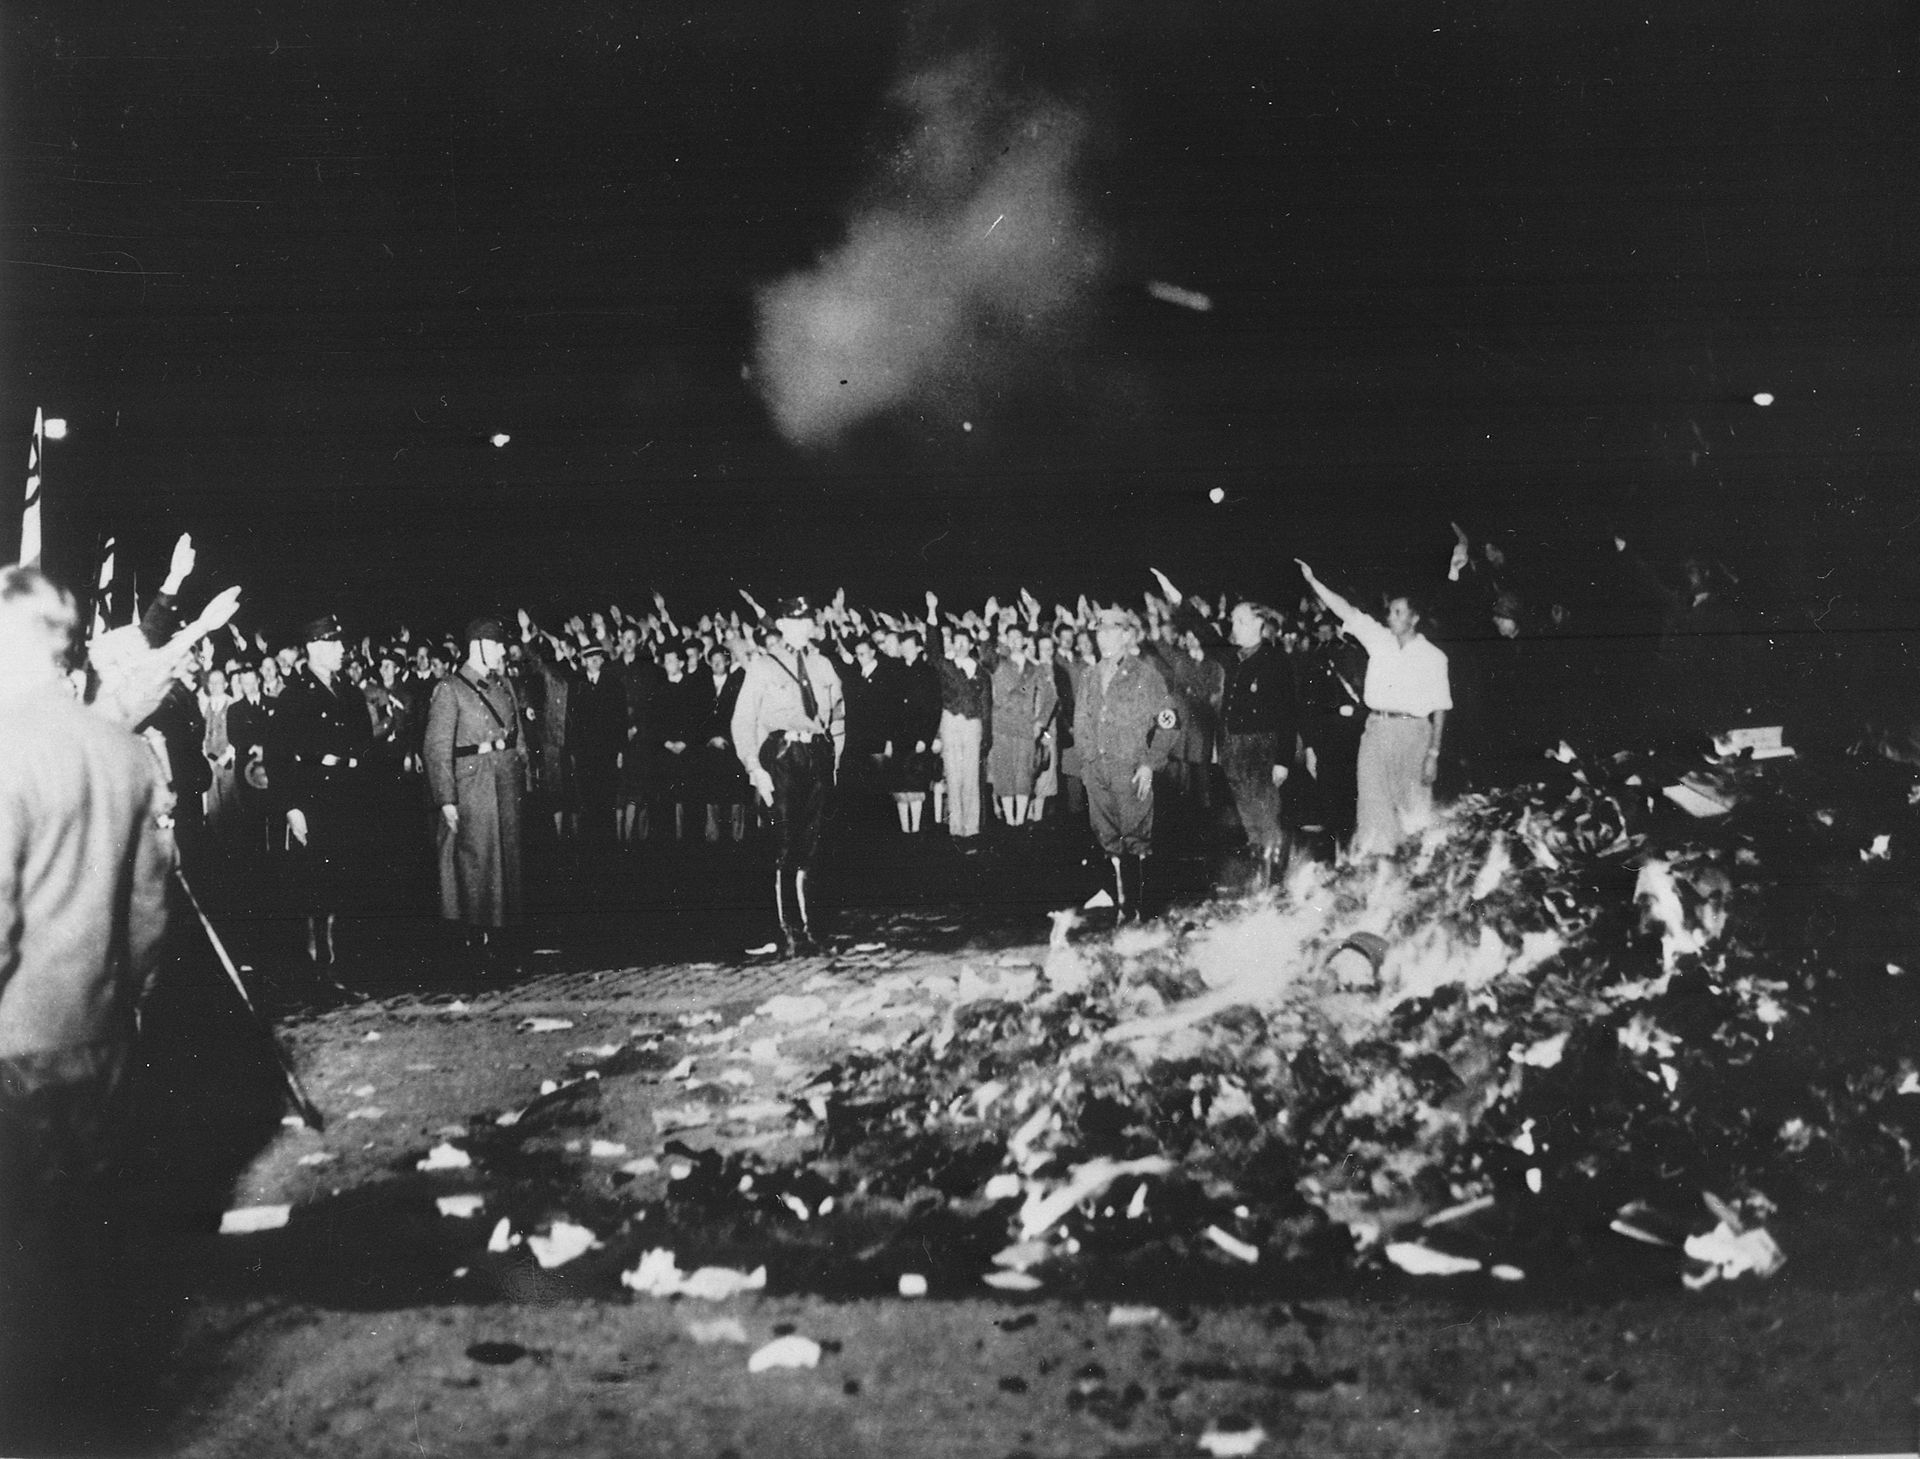 Thousands of books smoulder in a huge bonfire as Germans give the Nazi salute during the wave of book-burnings that spread throughout Germany.